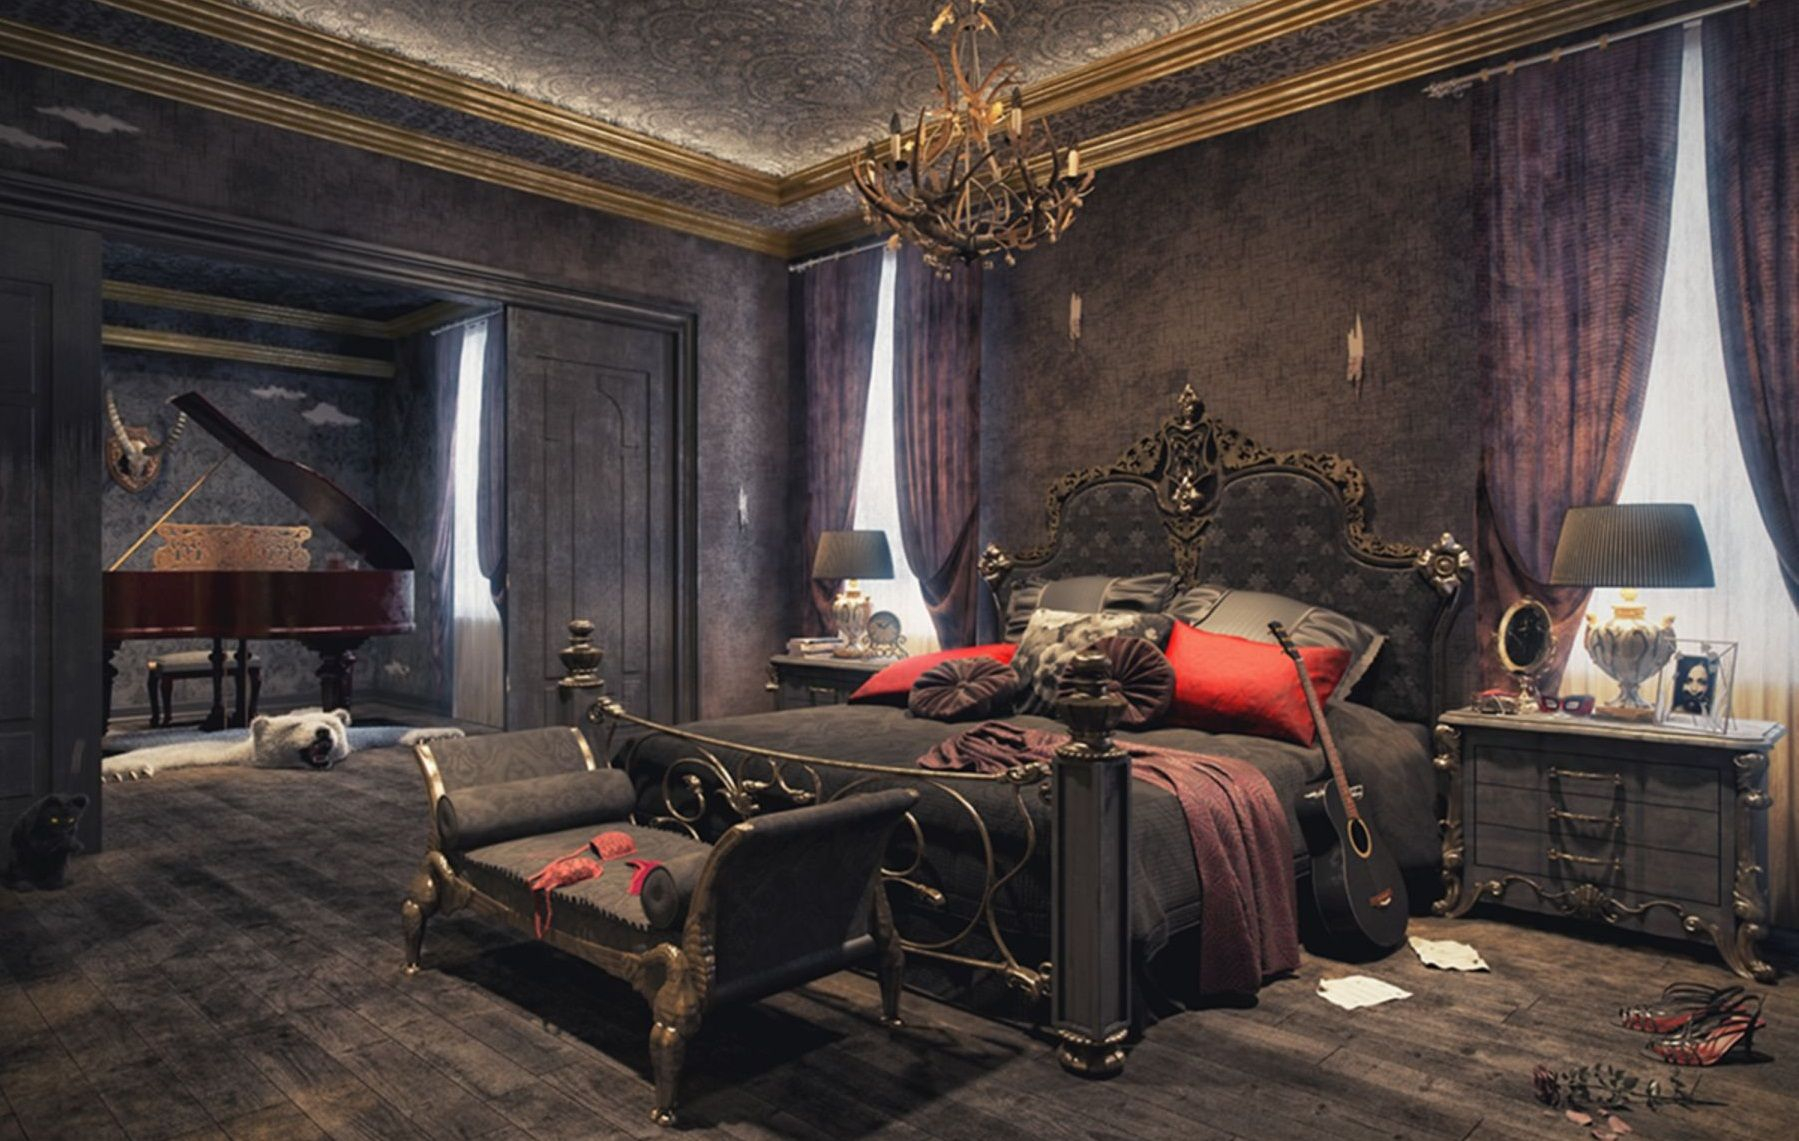 Top 10 Awesome Modern Gothic Bedroom Ideas That Will Make Your within Modern Gothic Bedroom